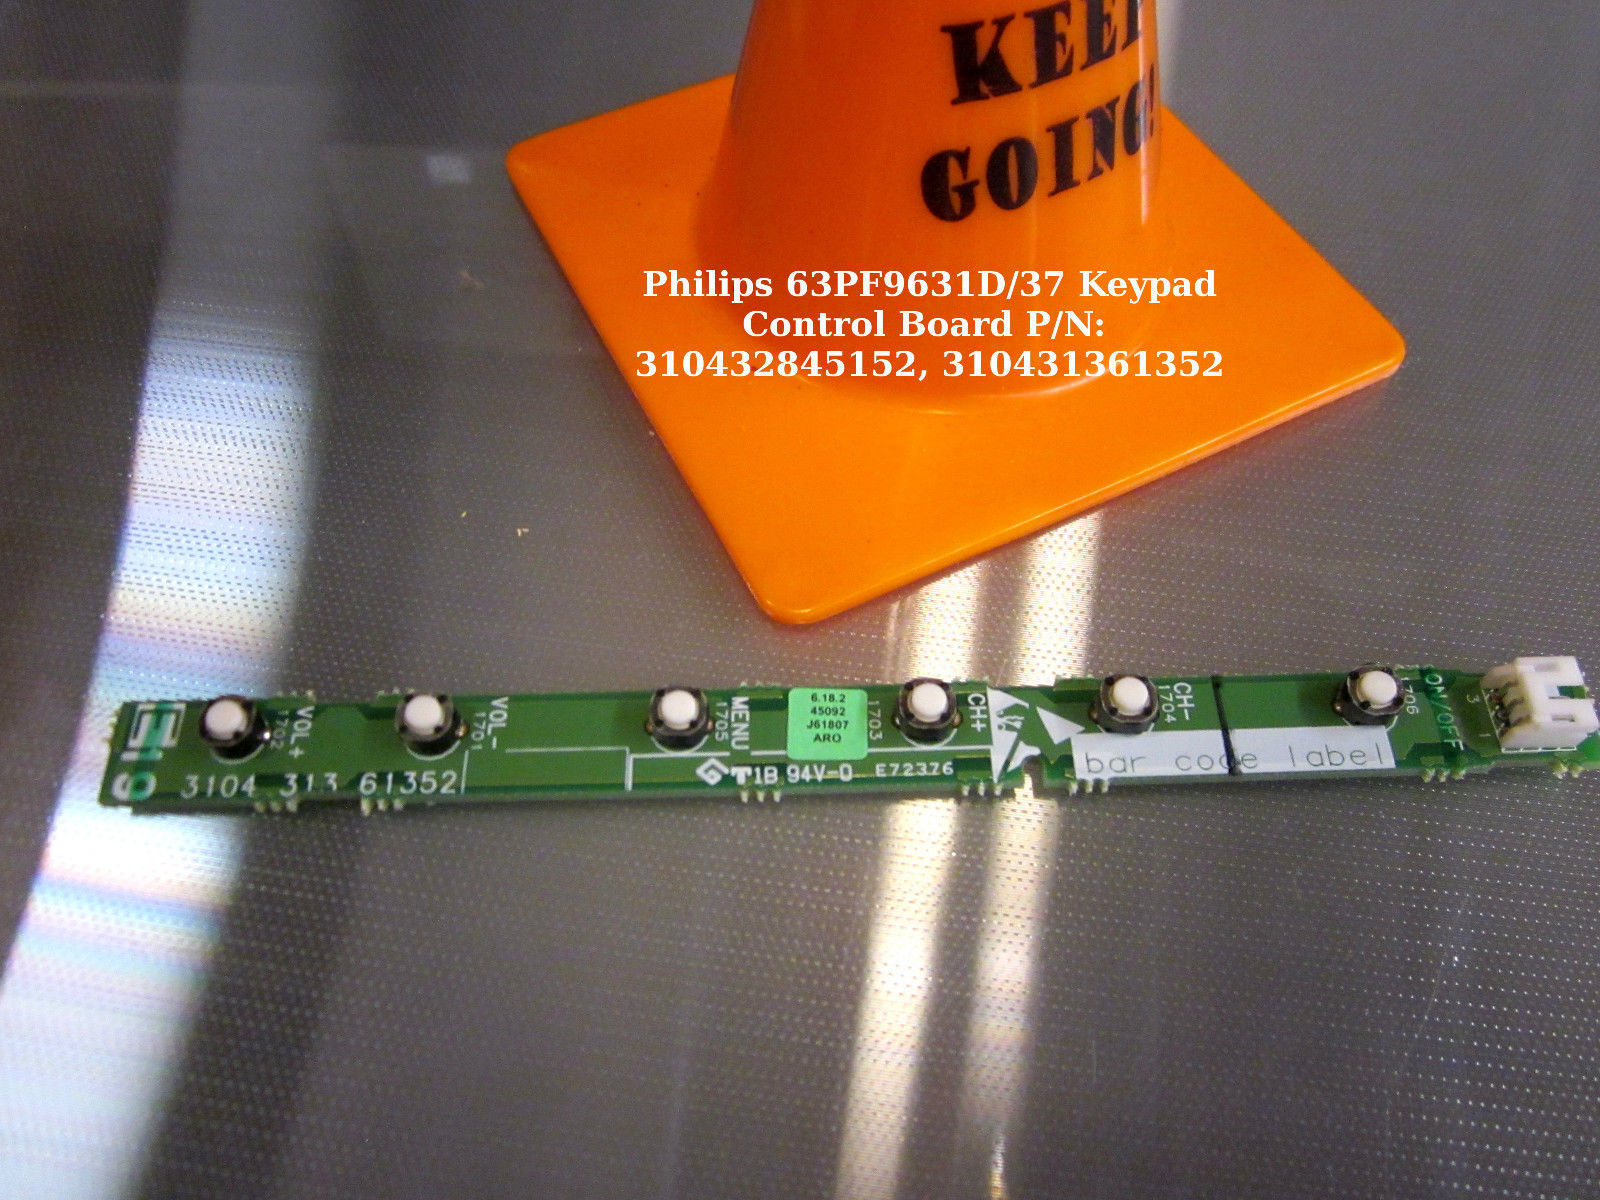 Primary image for Philips 63PF9631D/37 Keypad Control Board P/N:  310432845152, 310431361352